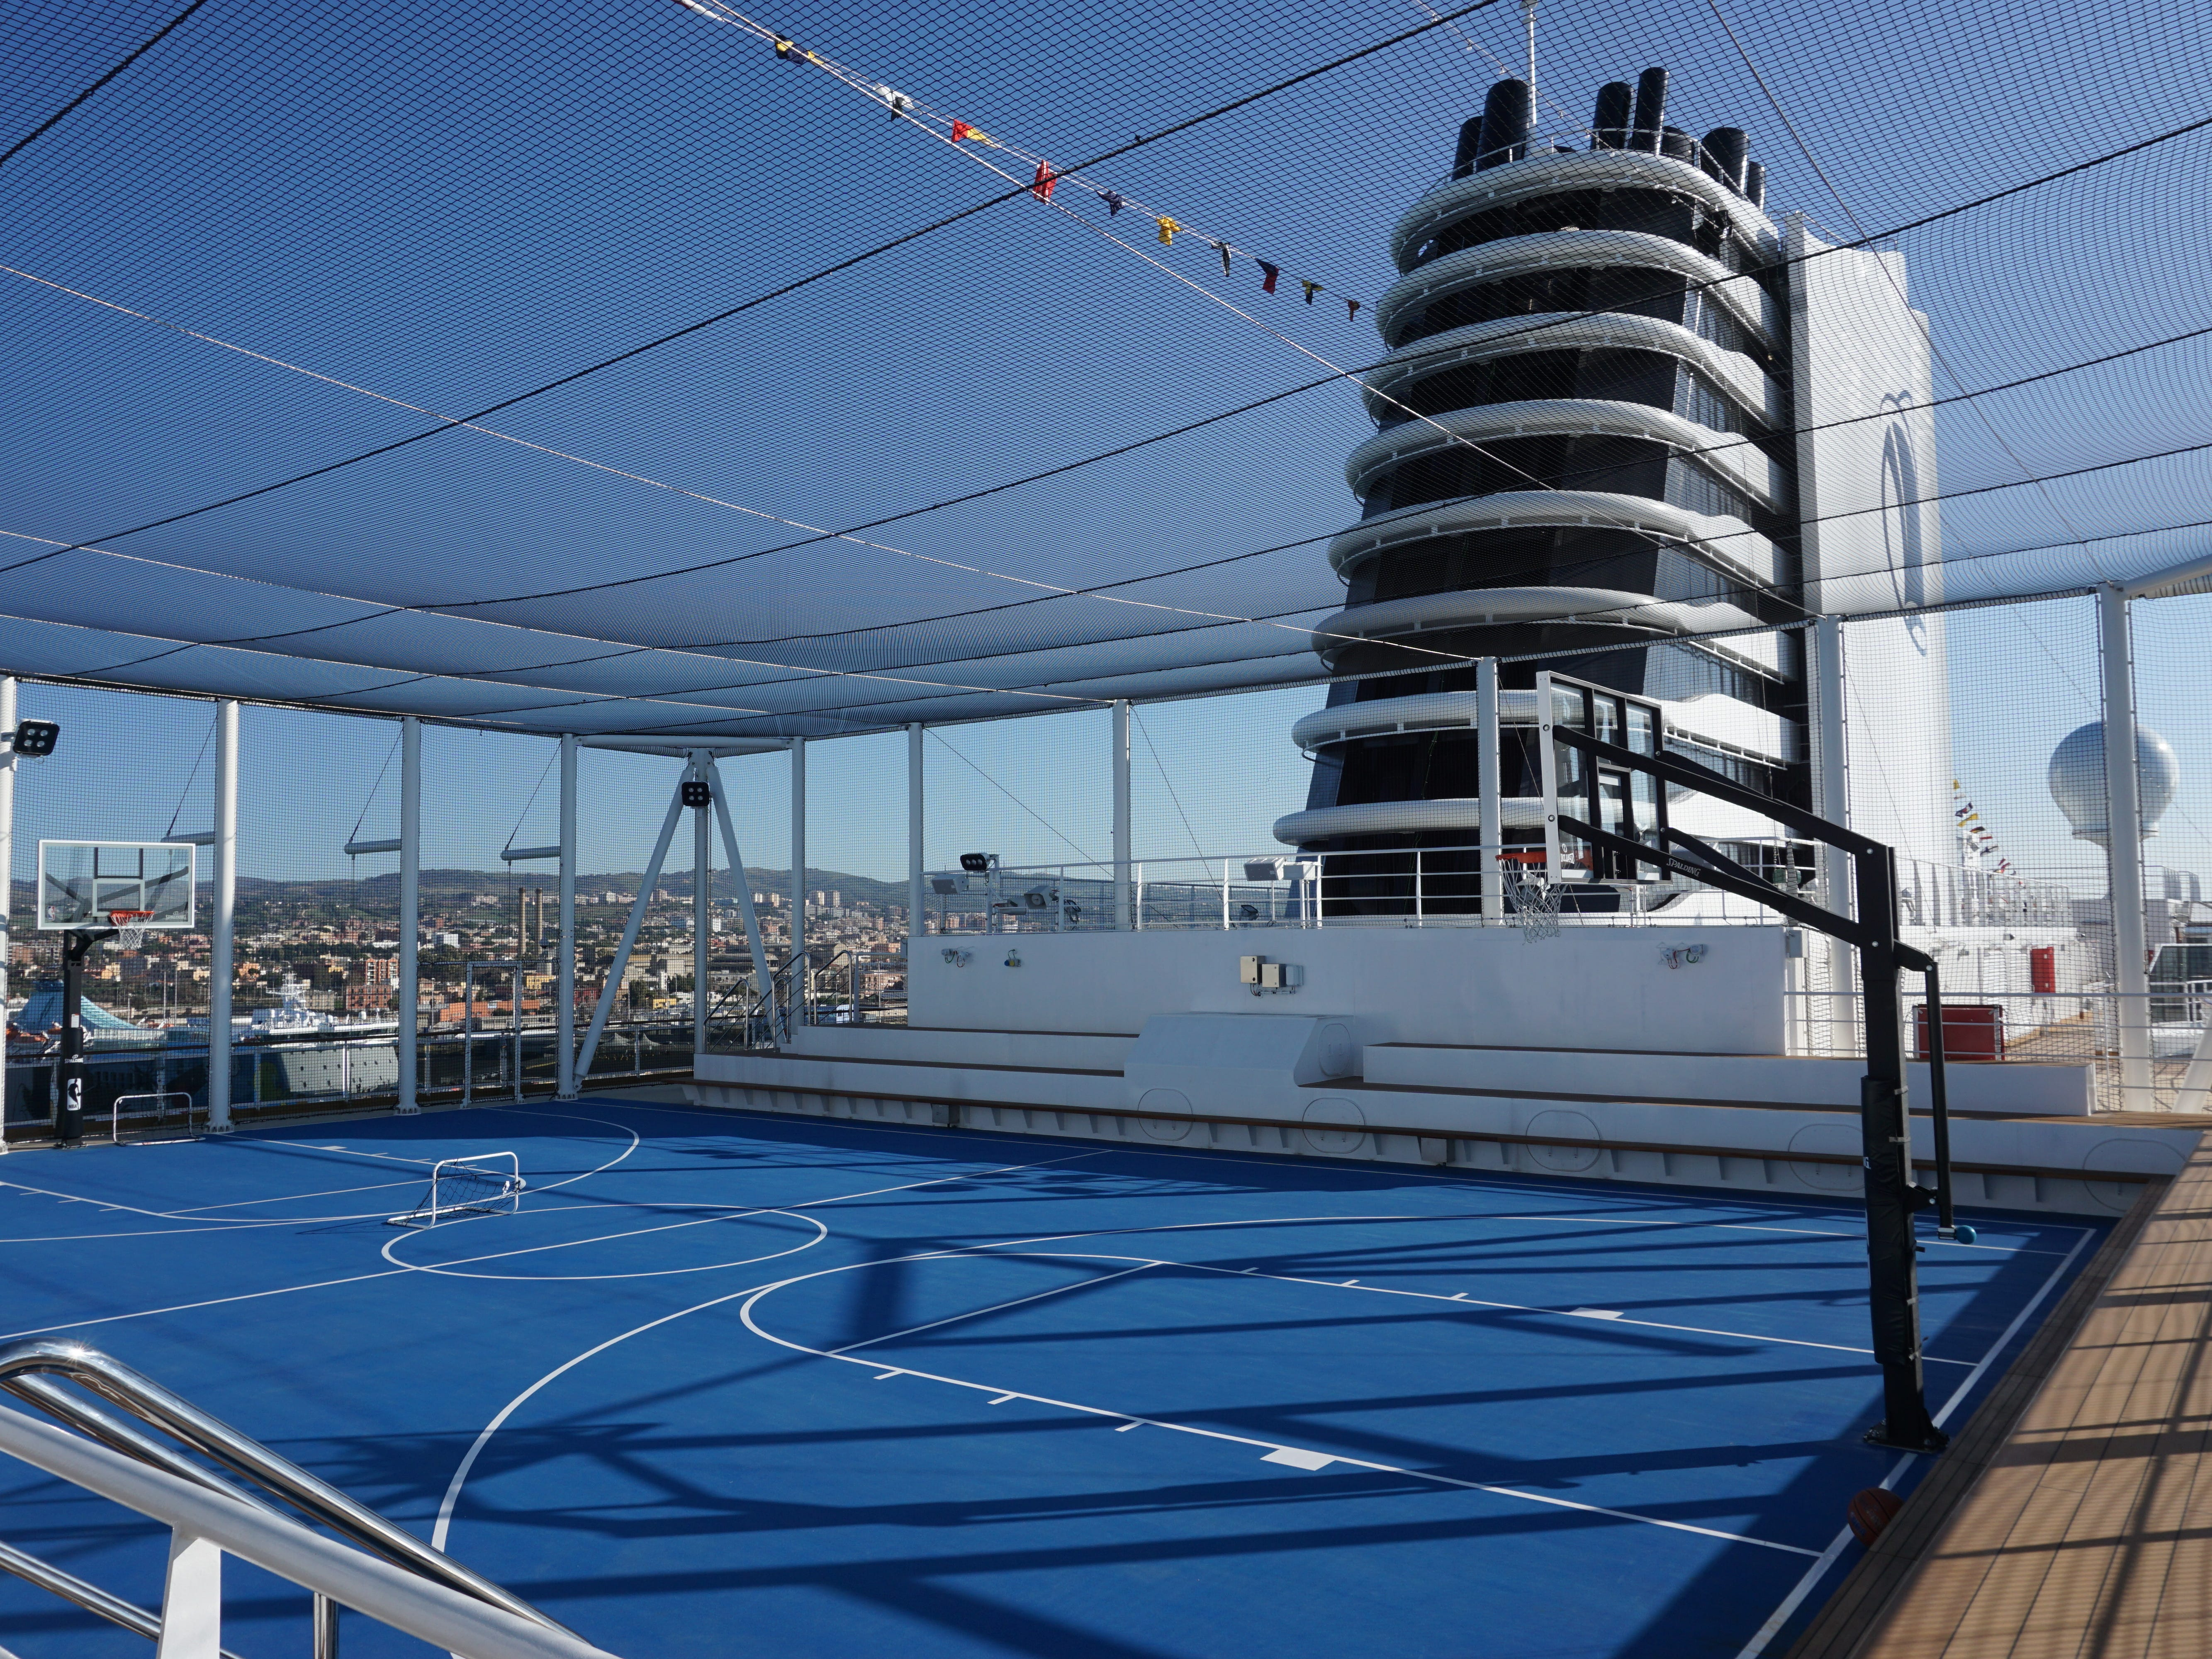 The netted-in Sports Court is located at the base of the Nieuw Statendam's imposing funnel on Deck 11.